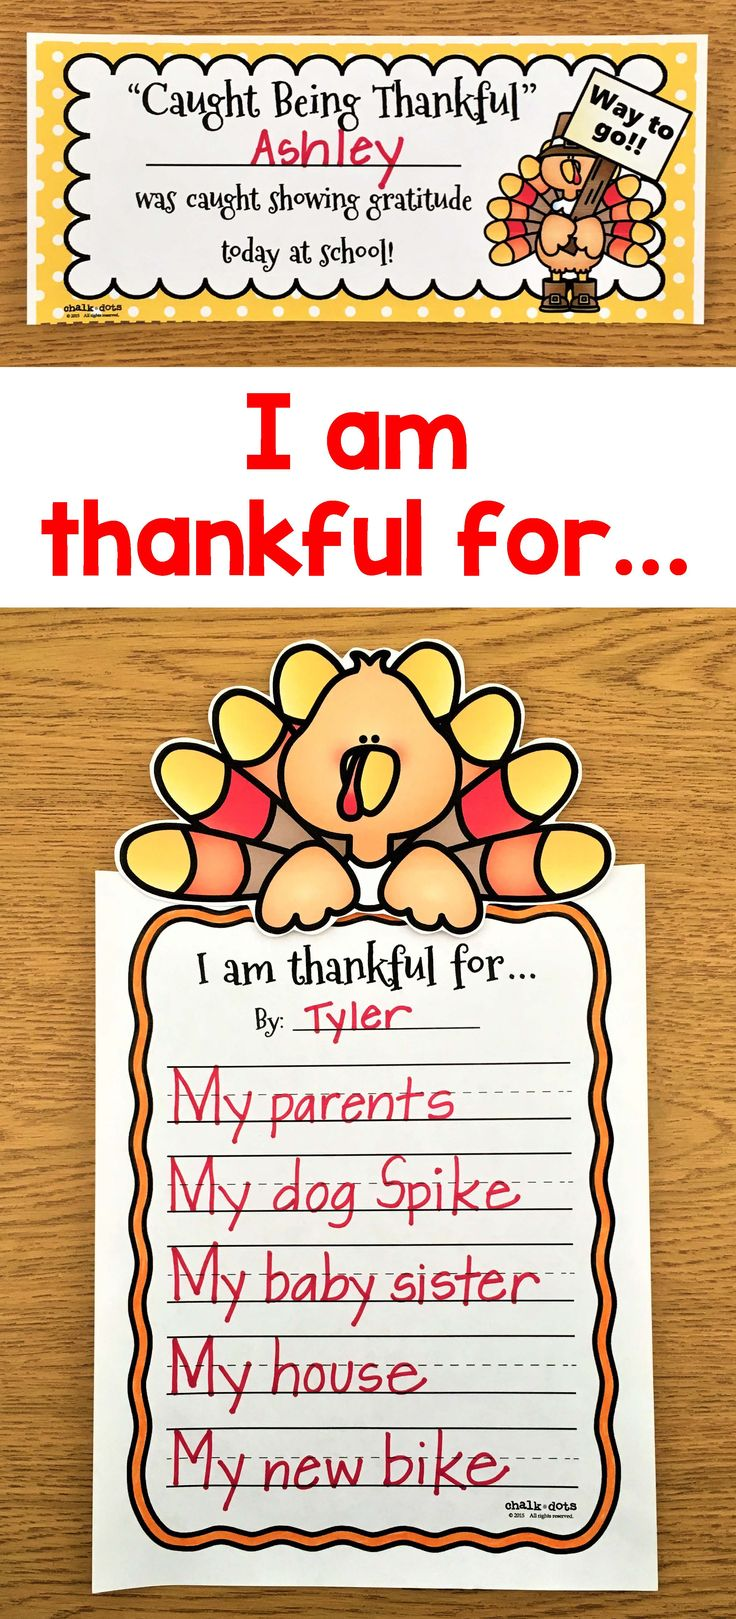 This packet includes various activities to encourage your students to think about all the things they are thankful for and to remind them to show gratitude during the Thanksgiving season!